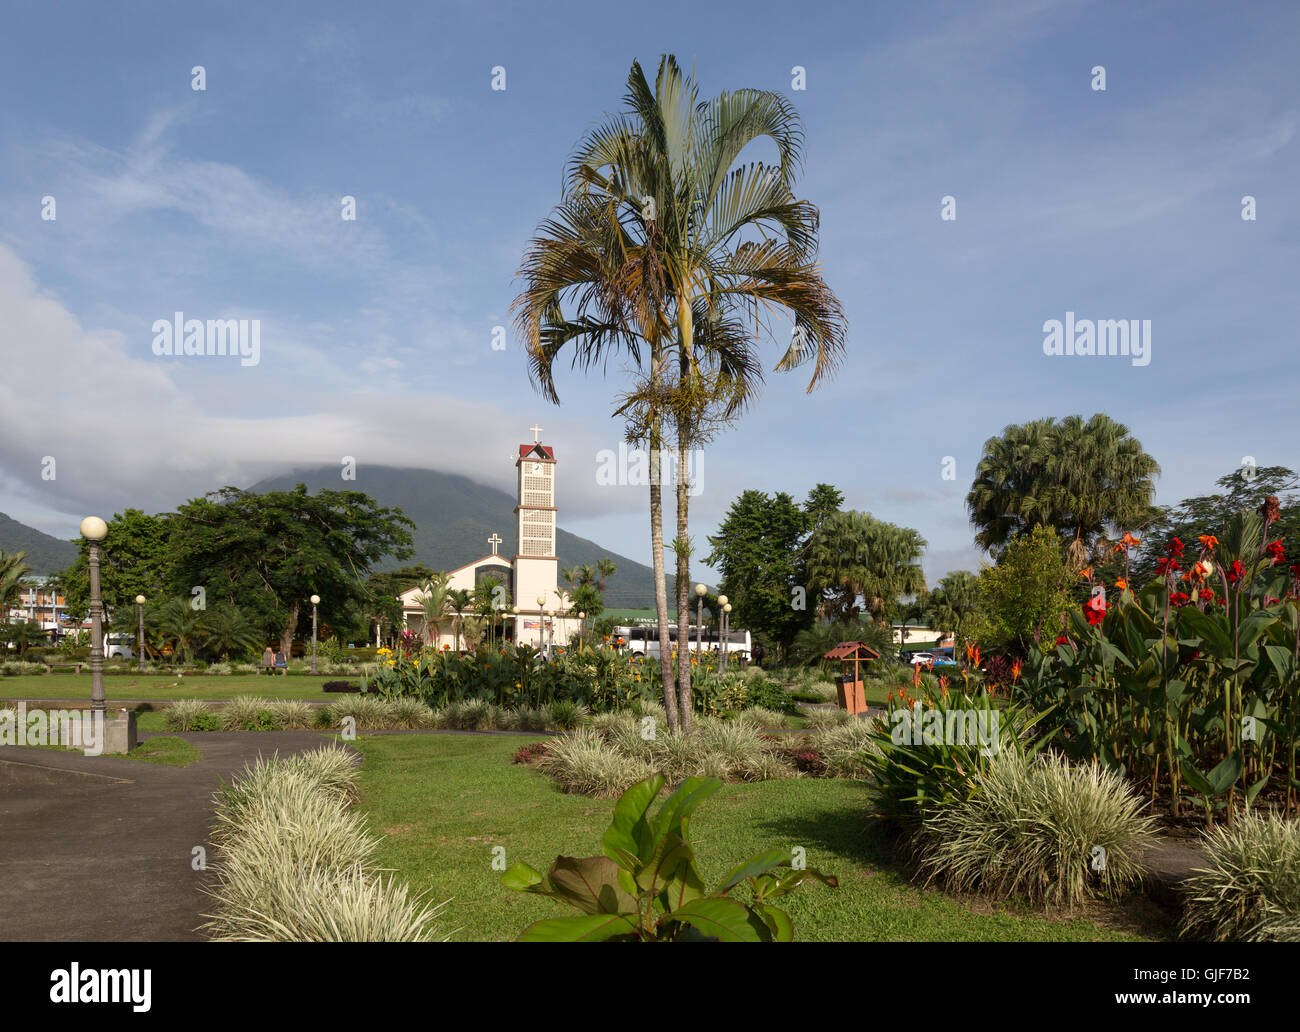 The church and Arenal Volcano, La Fortuna town, Alajuela province Costa Rica - Stock Image